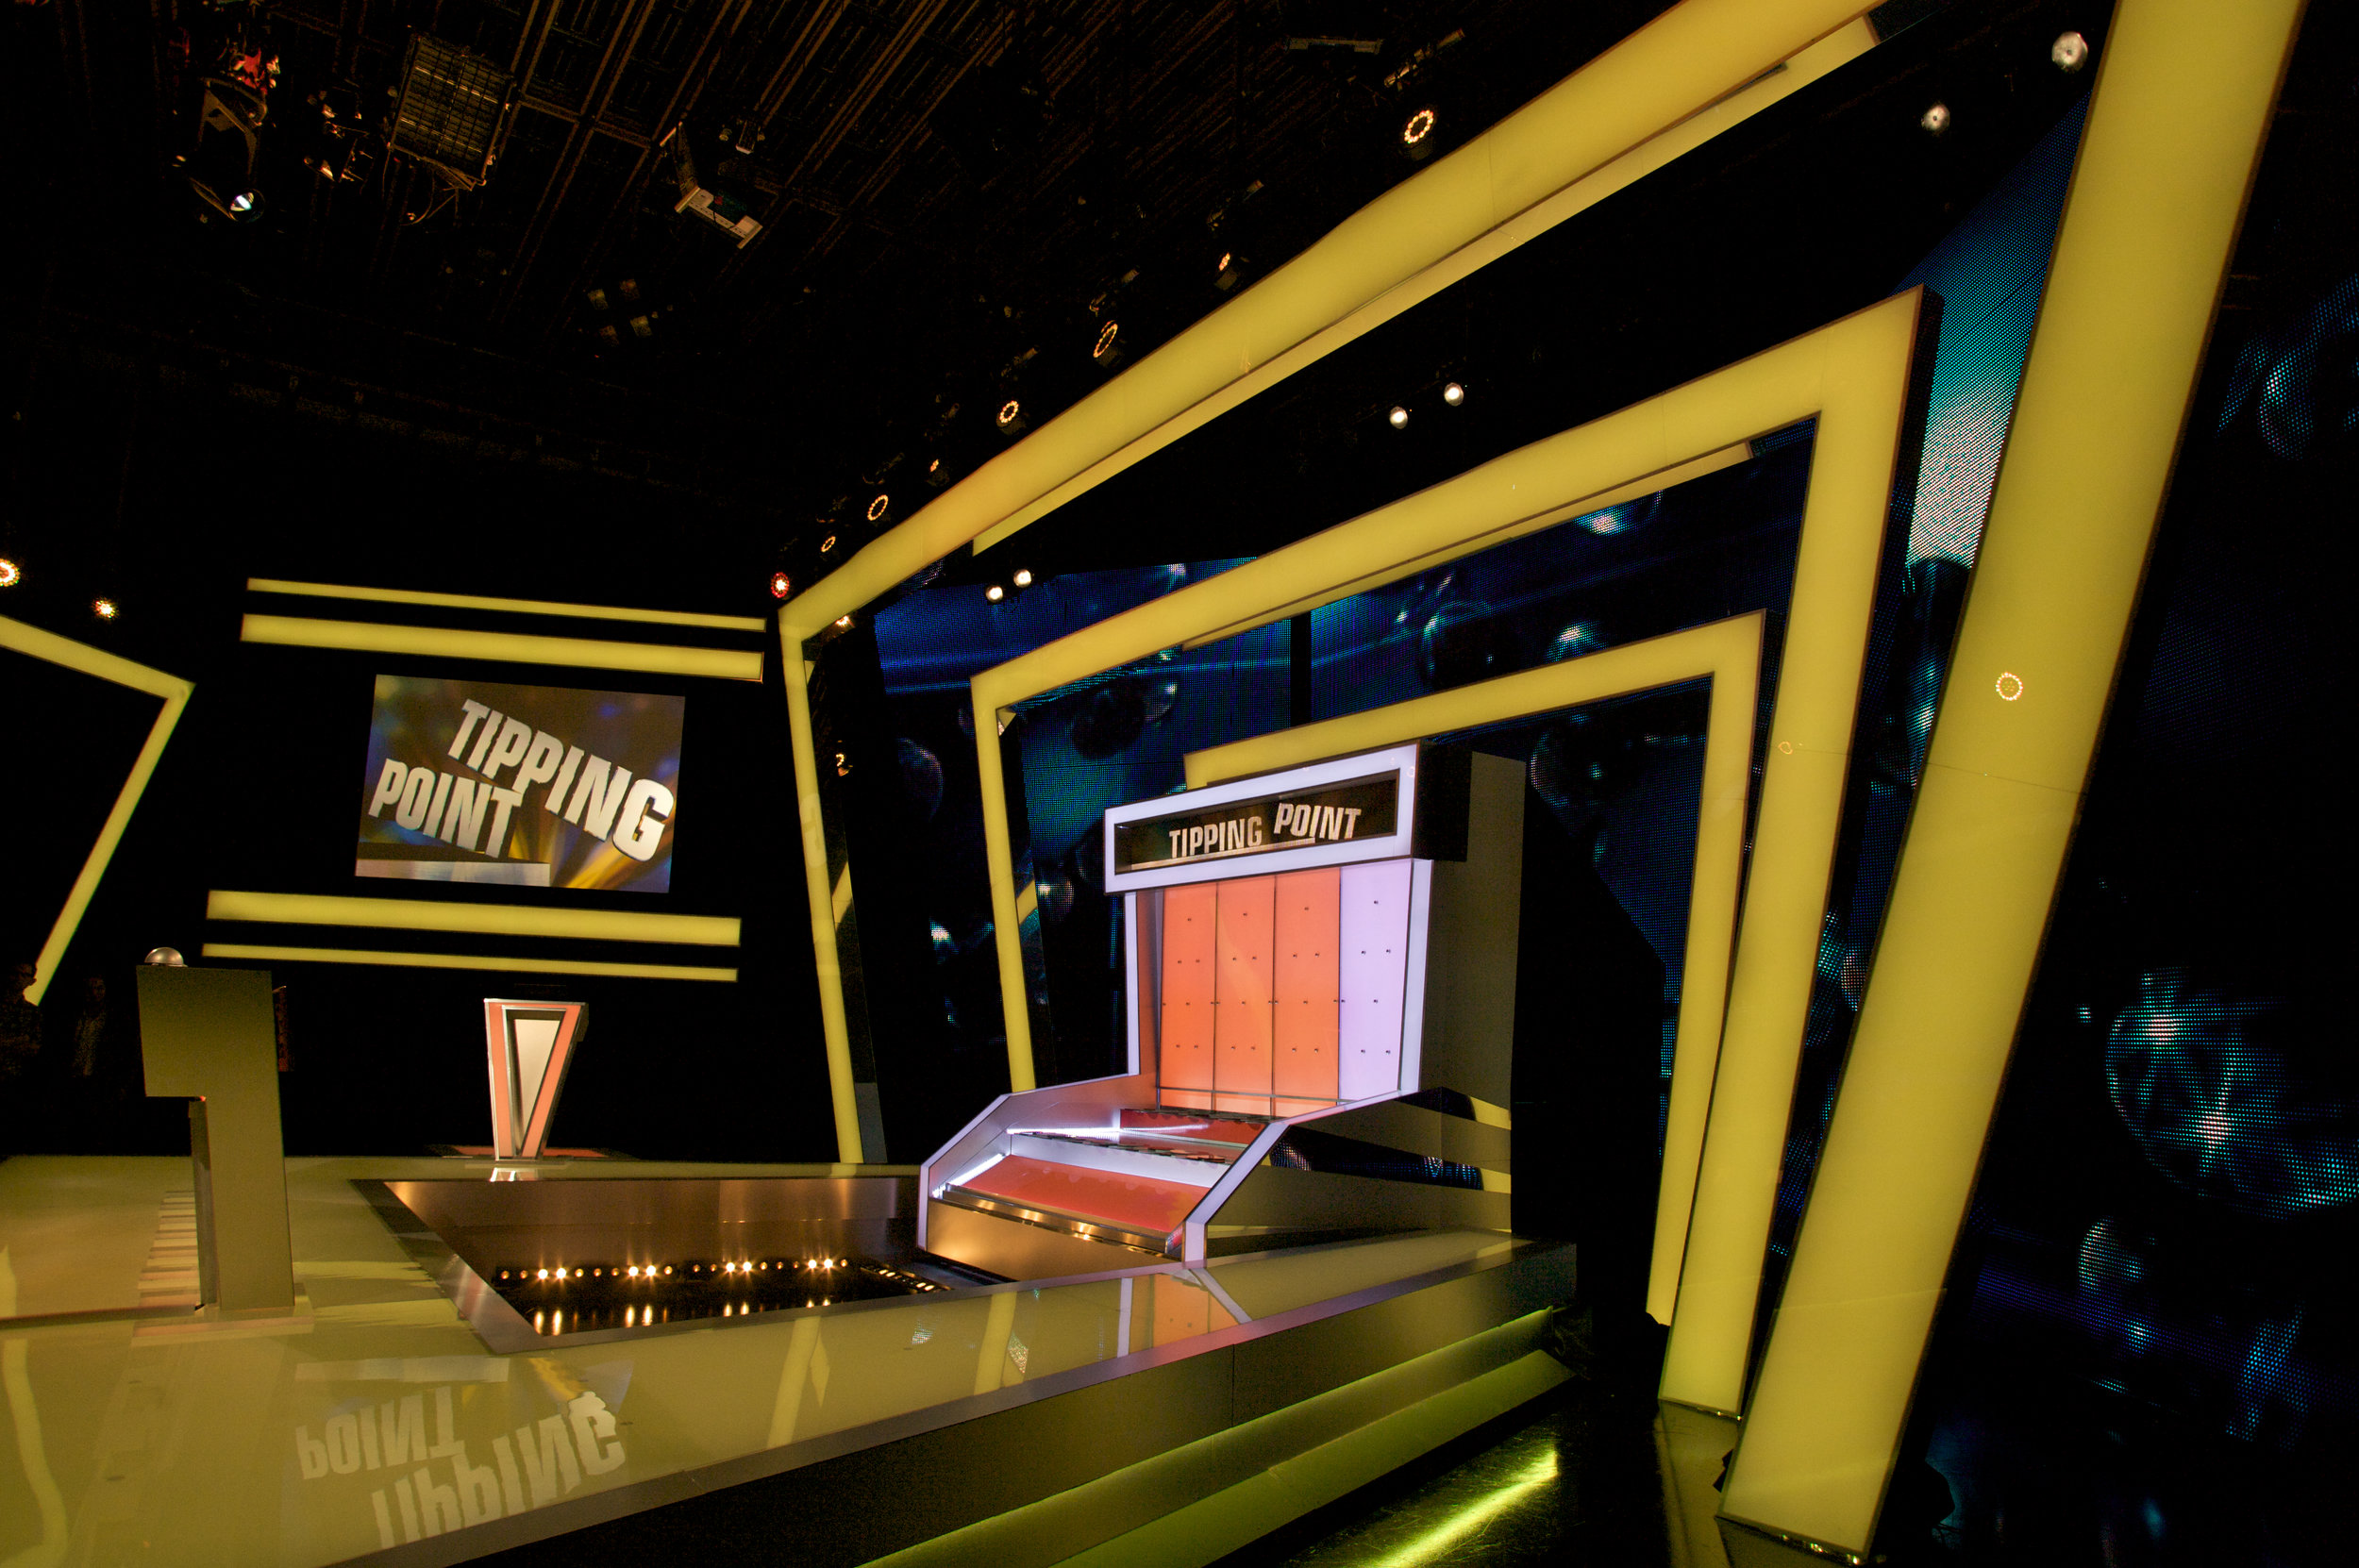 tippingpoint3.jpg